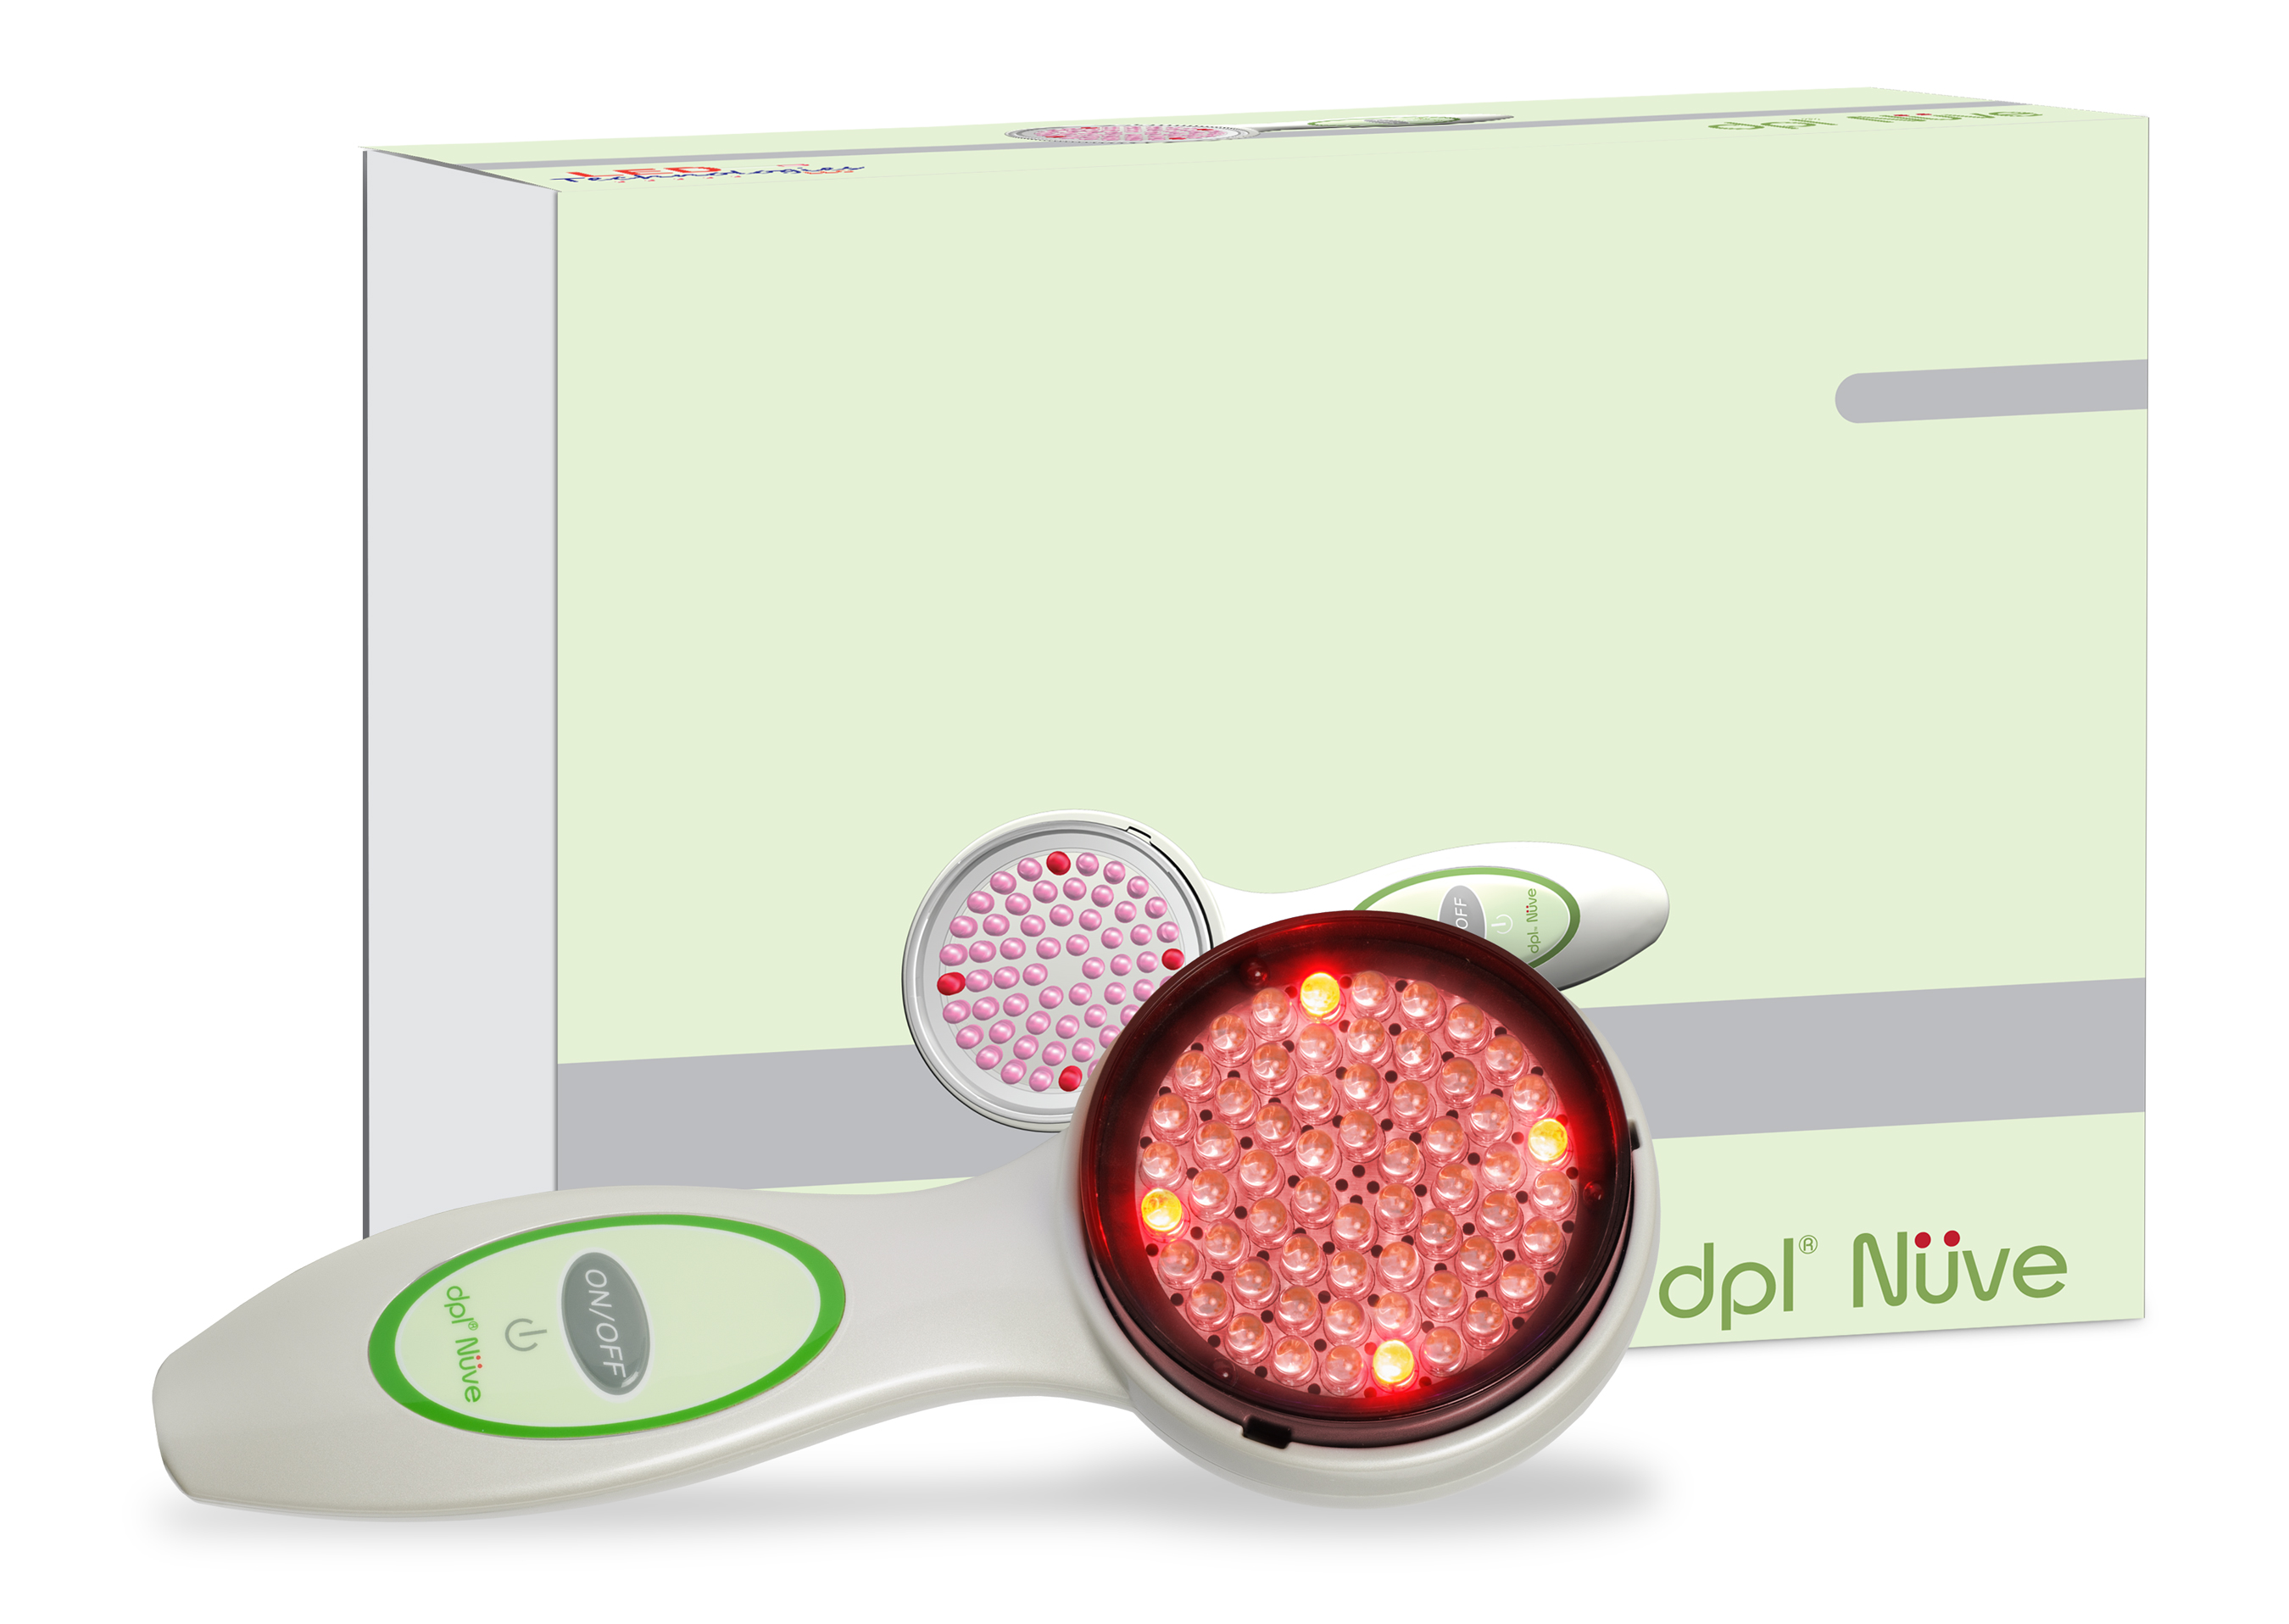 dpl Nuve Deep Penetrating Light (DPL) LED System for Pain Relief (FDA Approved)